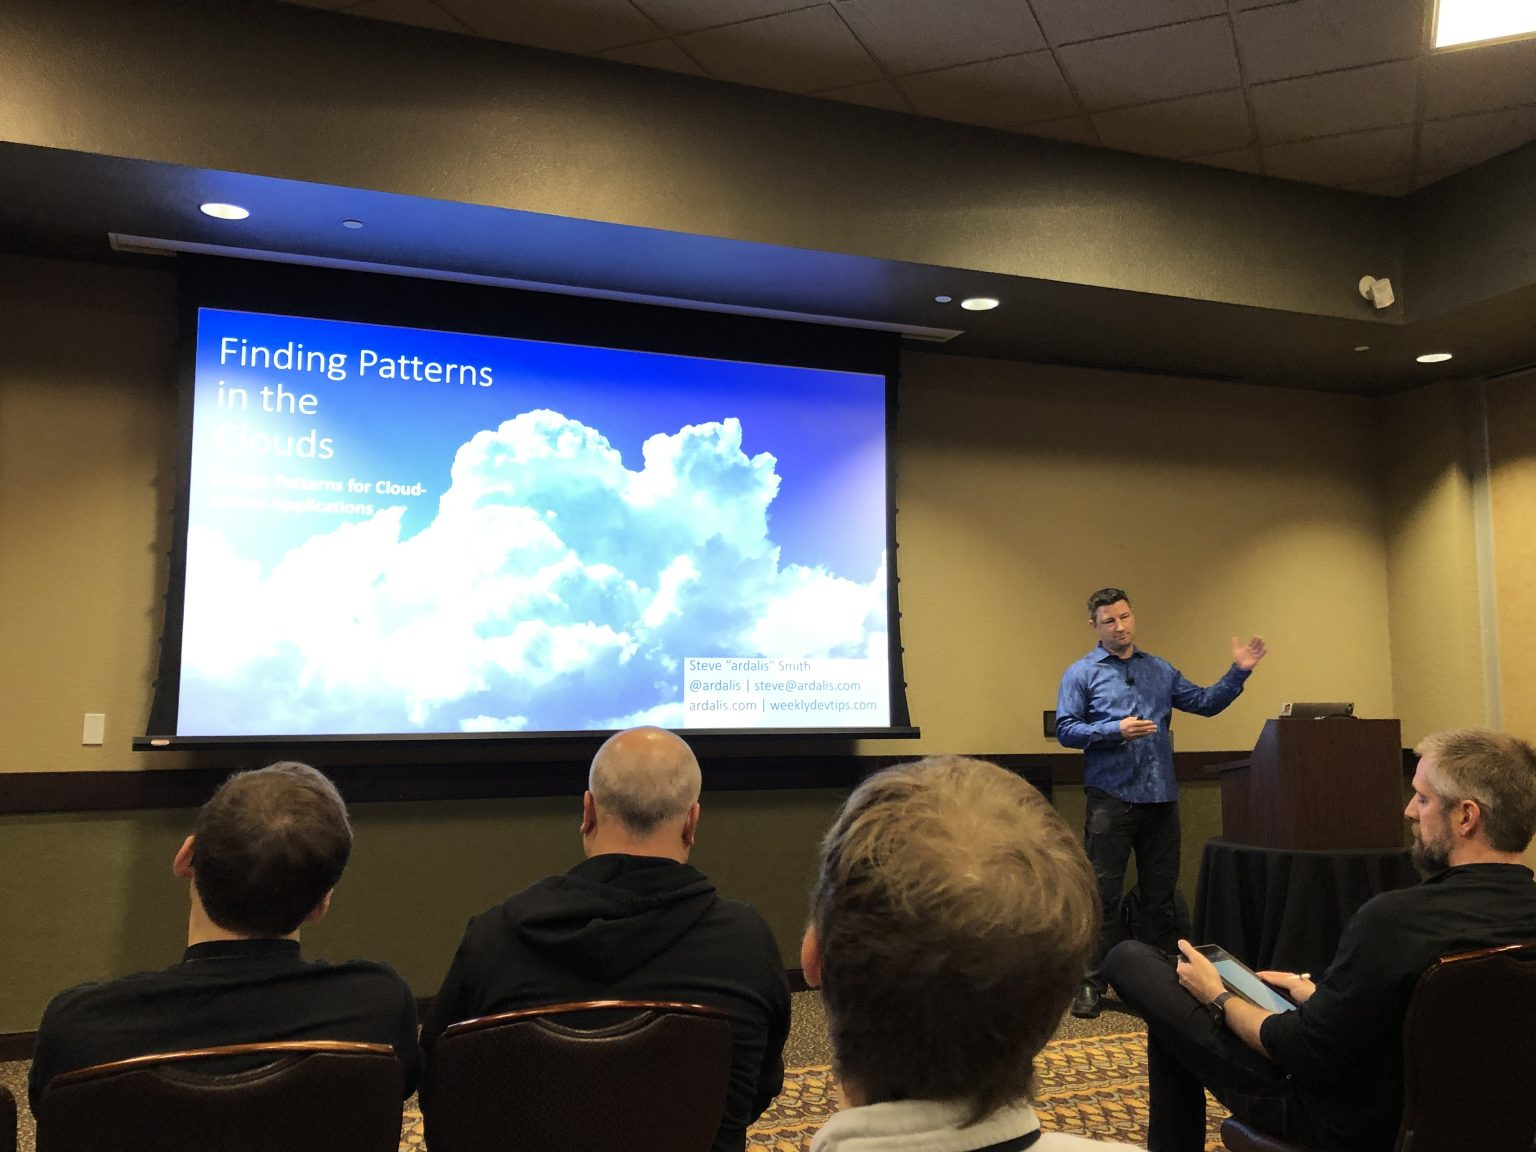 Steve Smith presenting on Cloud Design Patterns at Codemash 2020.